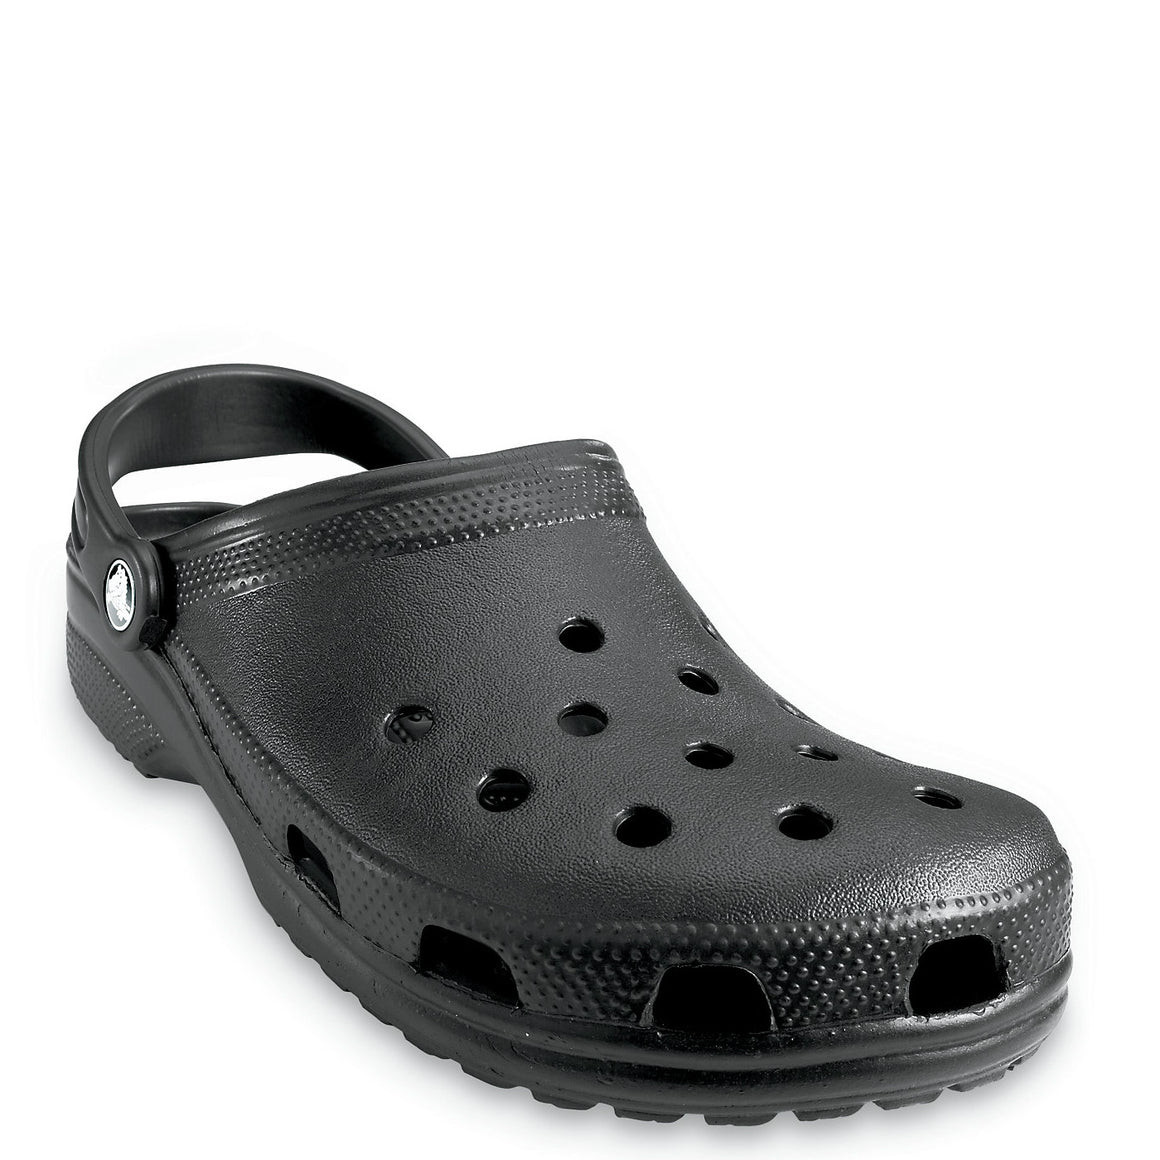 Crocs Classic Clog - Black 10001-001 - ShoeShackOnline